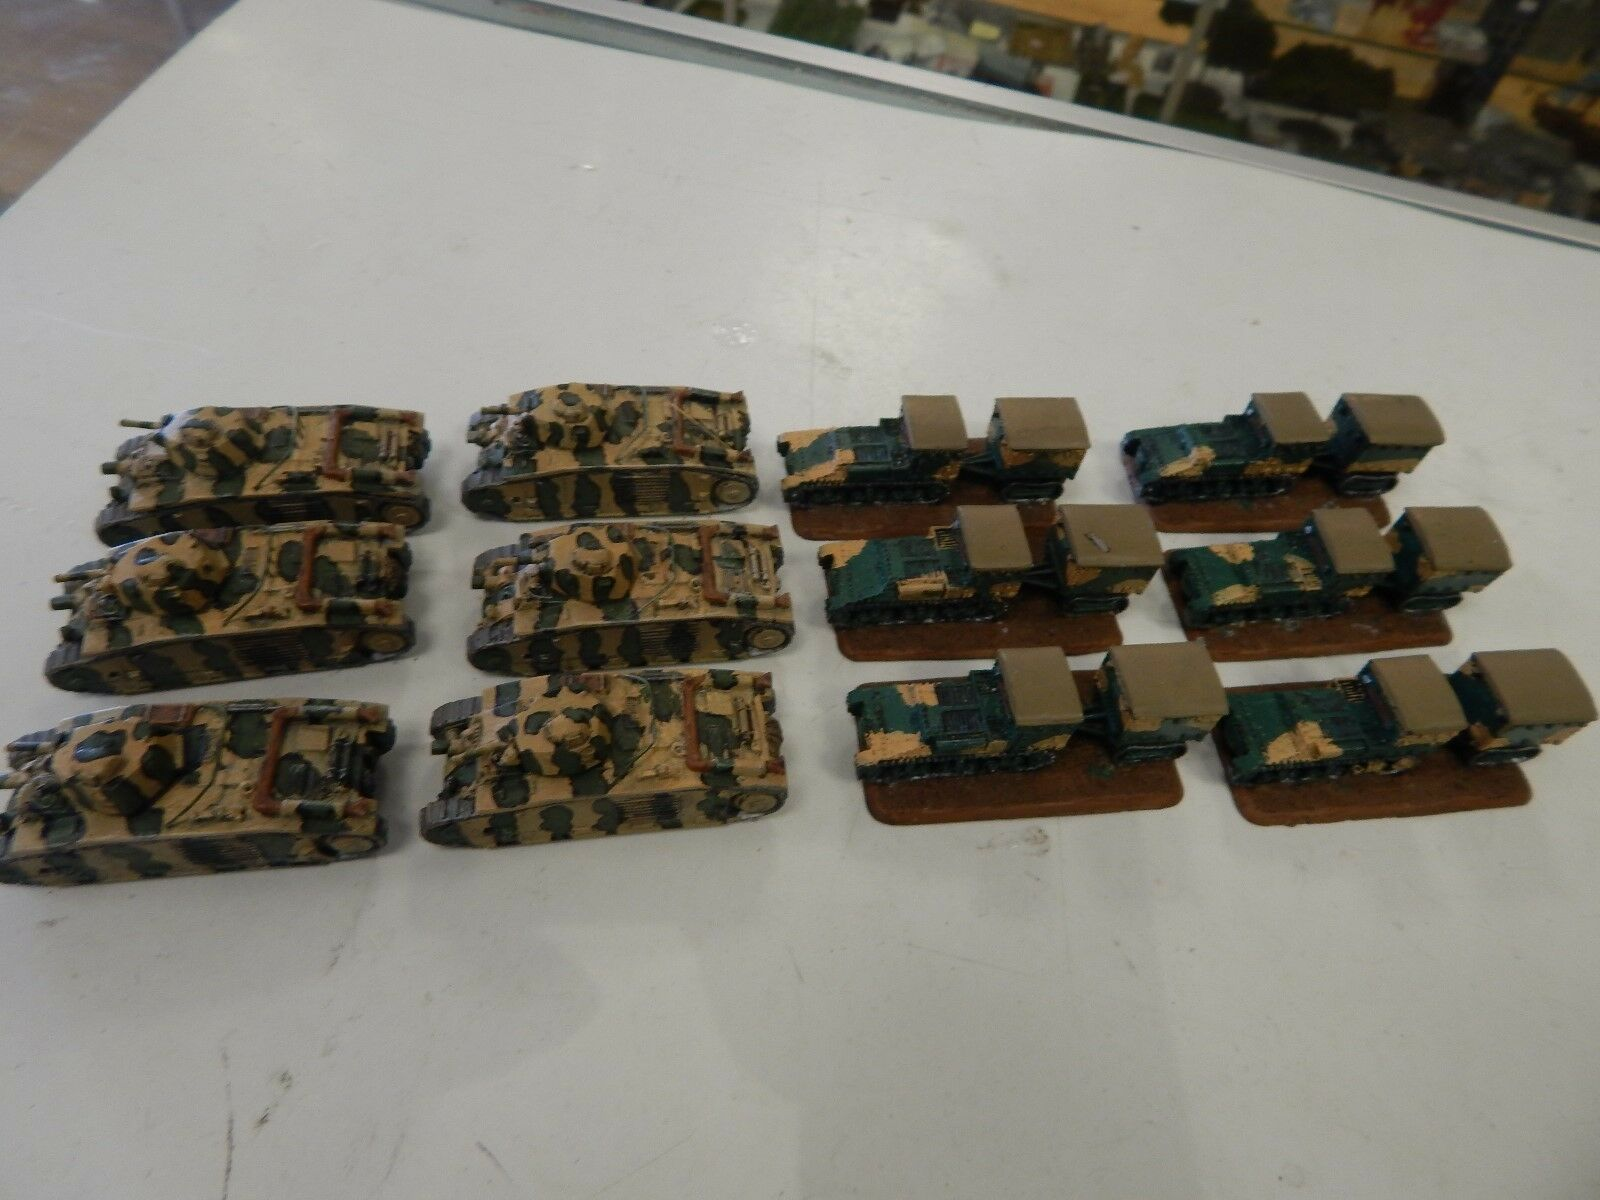 6 Char B tanks and 6 Renault UE carriers